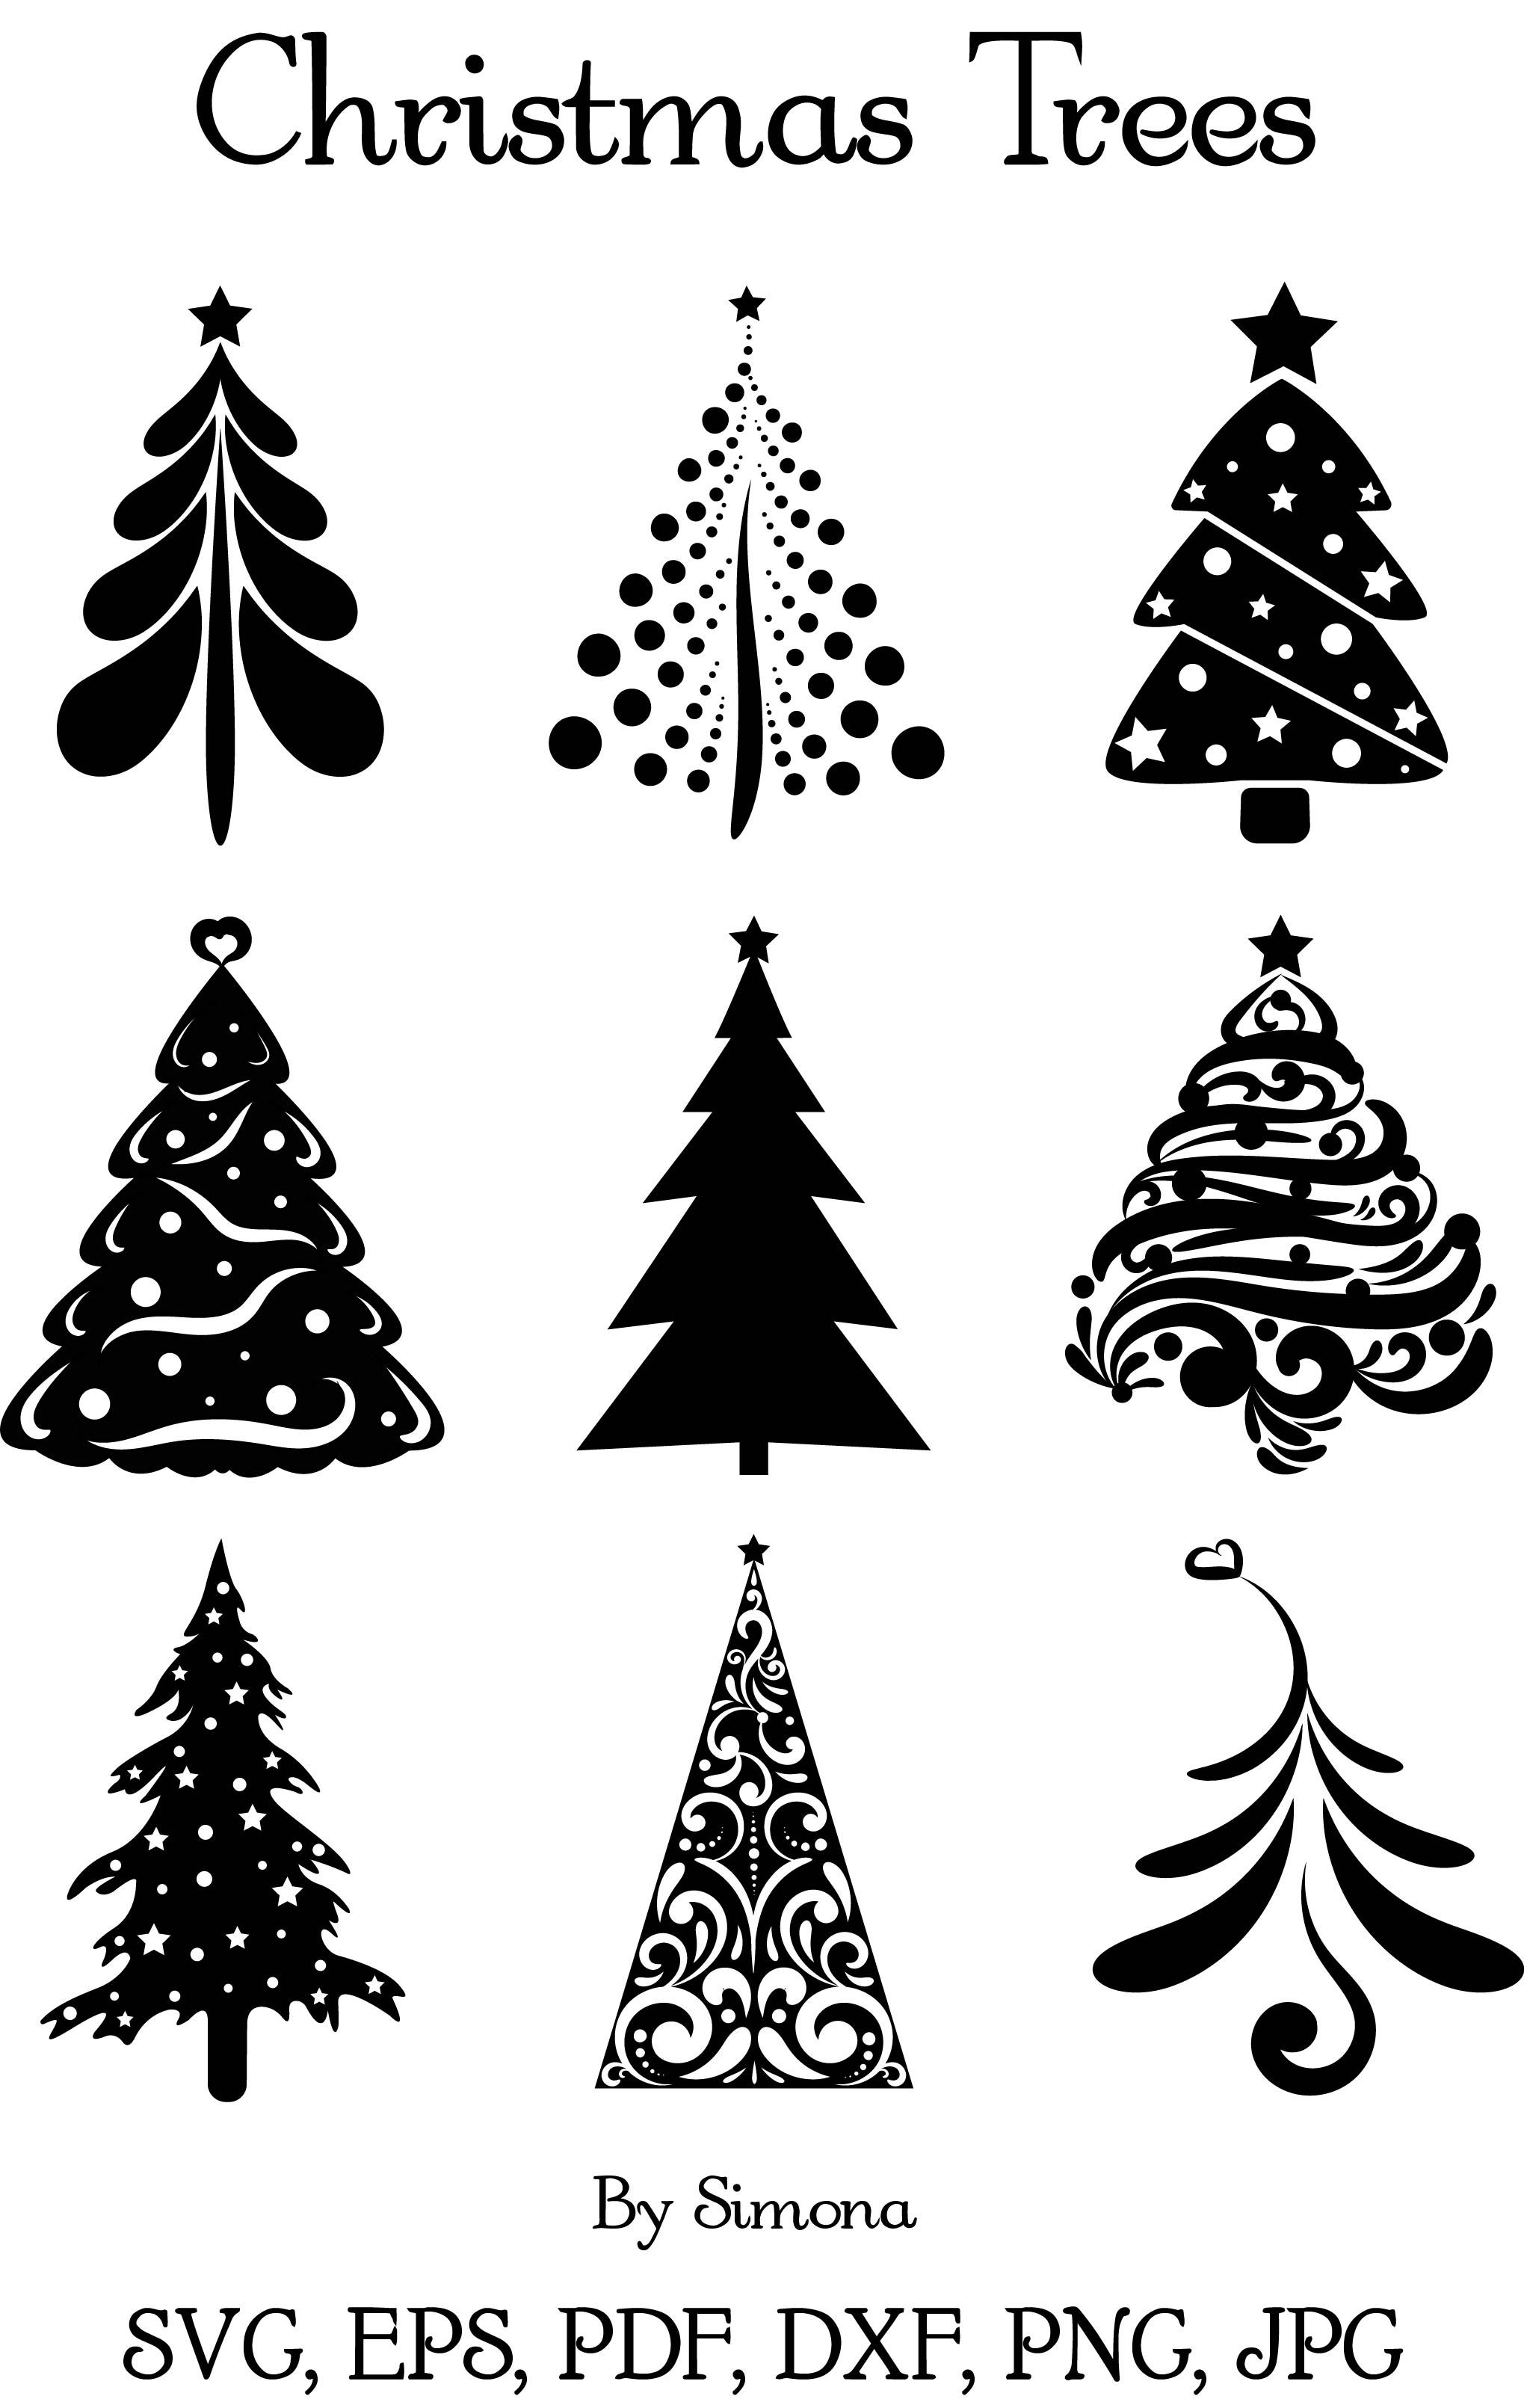 Christmas Trees SVG/PNG Christmas tree stencil